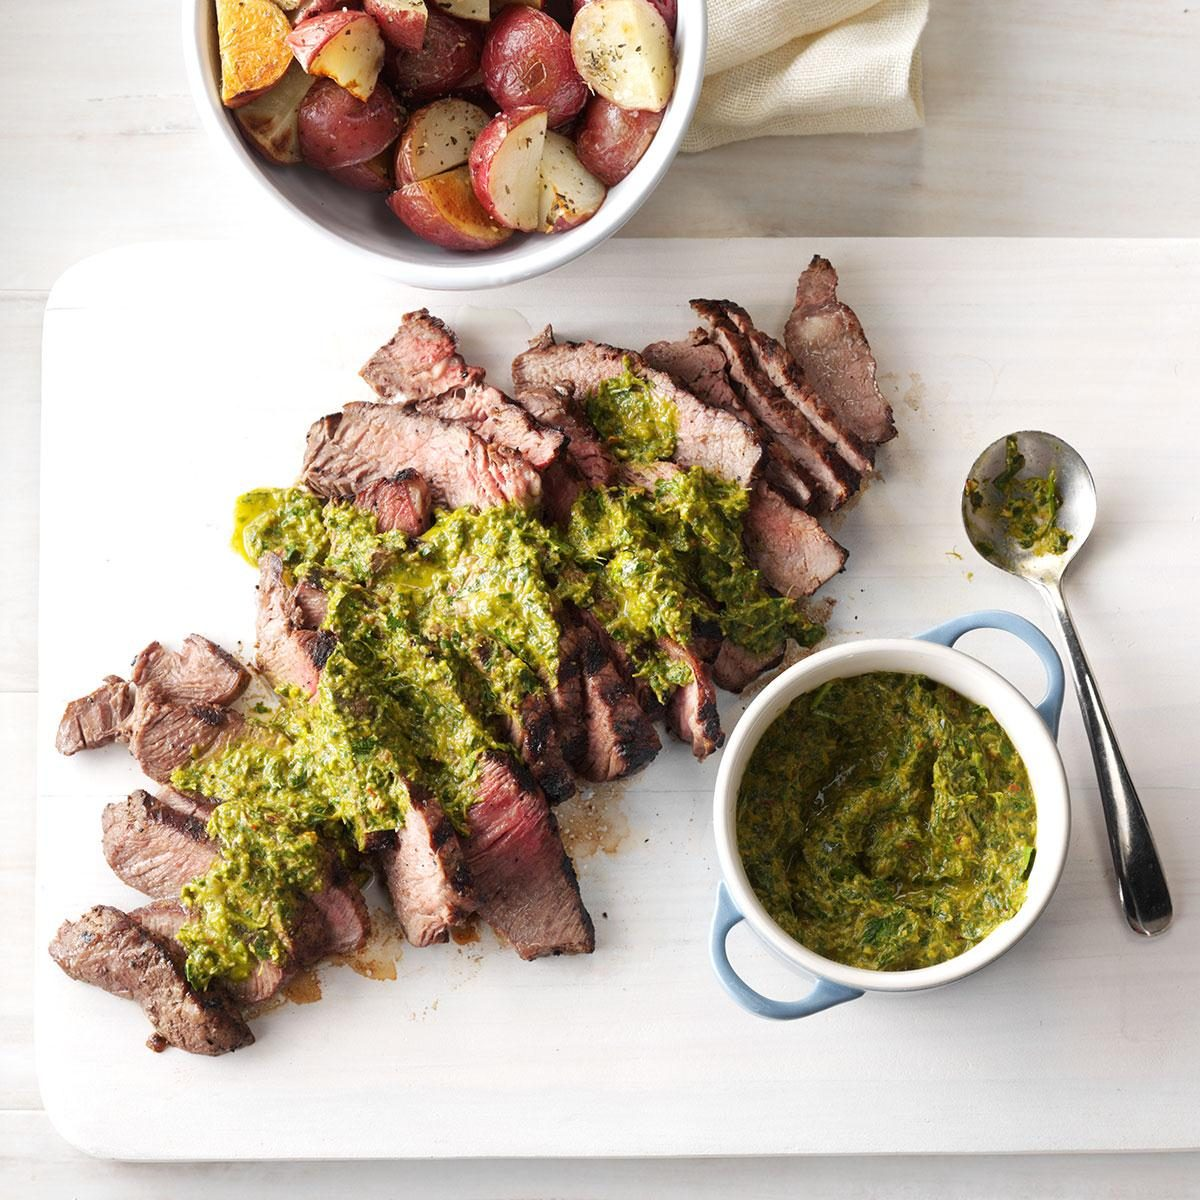 Steak with Chipotle-Lime Chimichurri